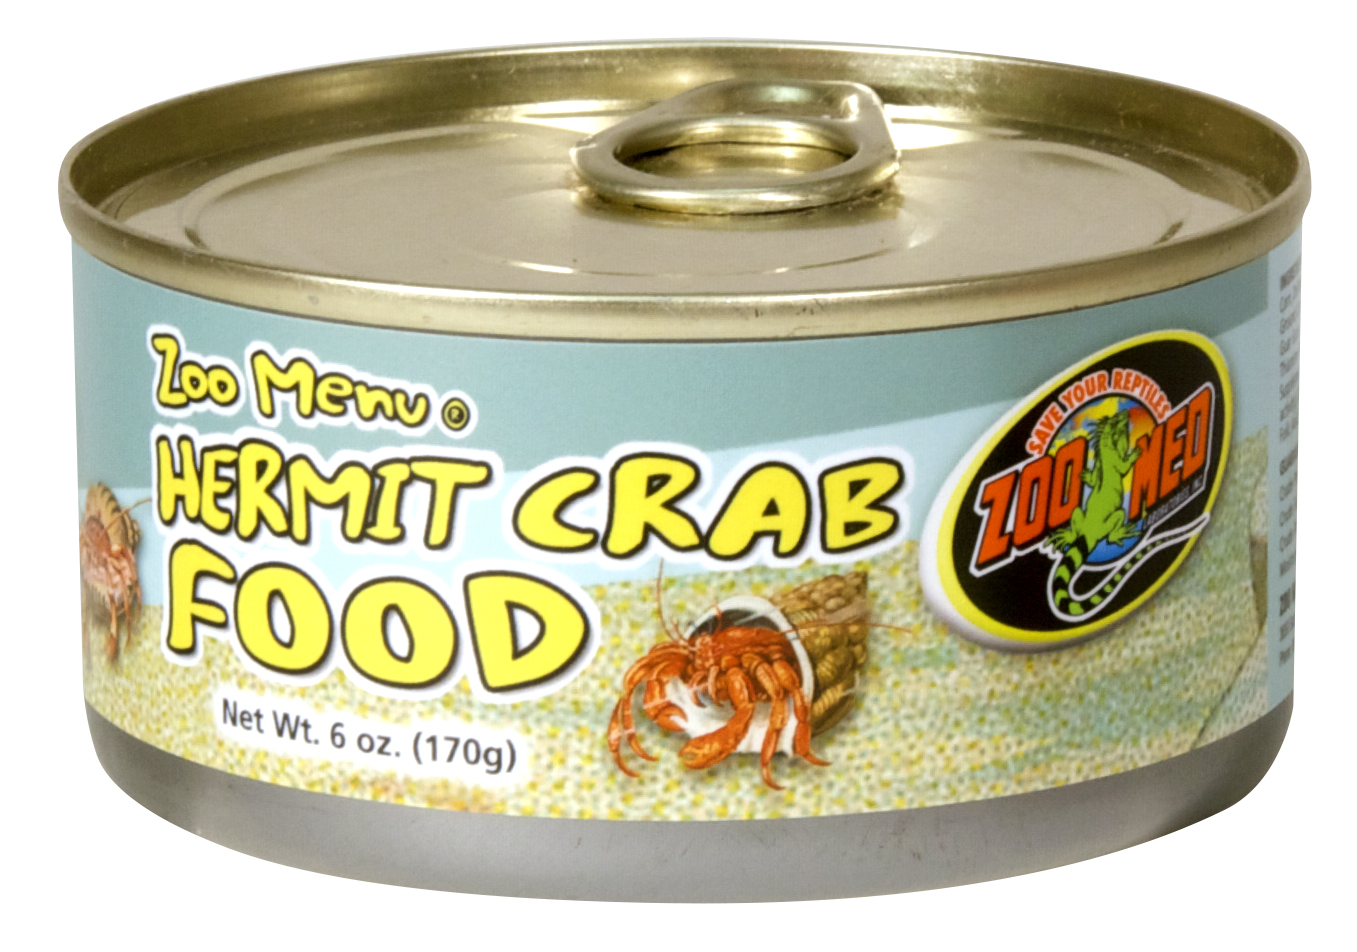 Hermit Crab Food (cans/wet), 6 oz